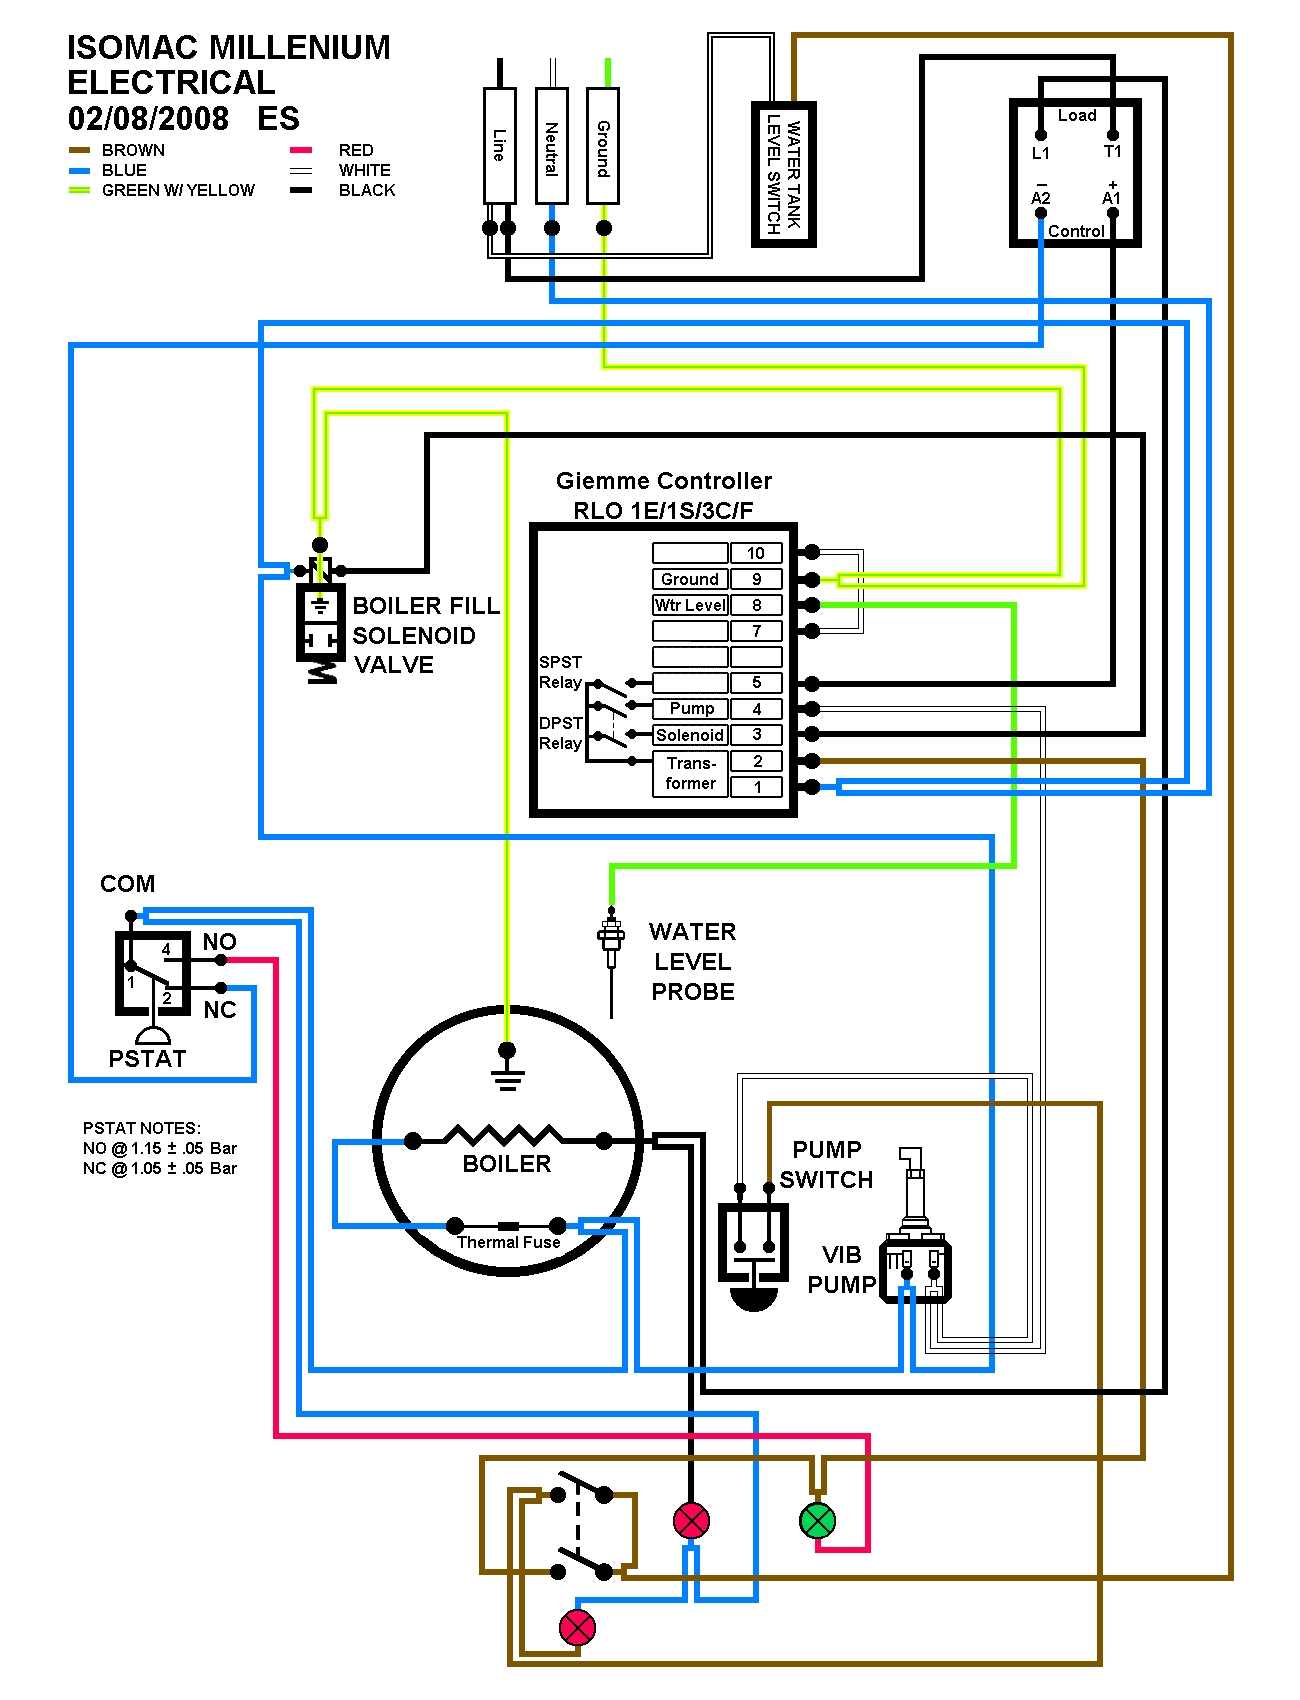 Pid Diagram Home Circuit Wiring And Hub Schematics Isomac Tea Pressurestat Issues Example For Boiler